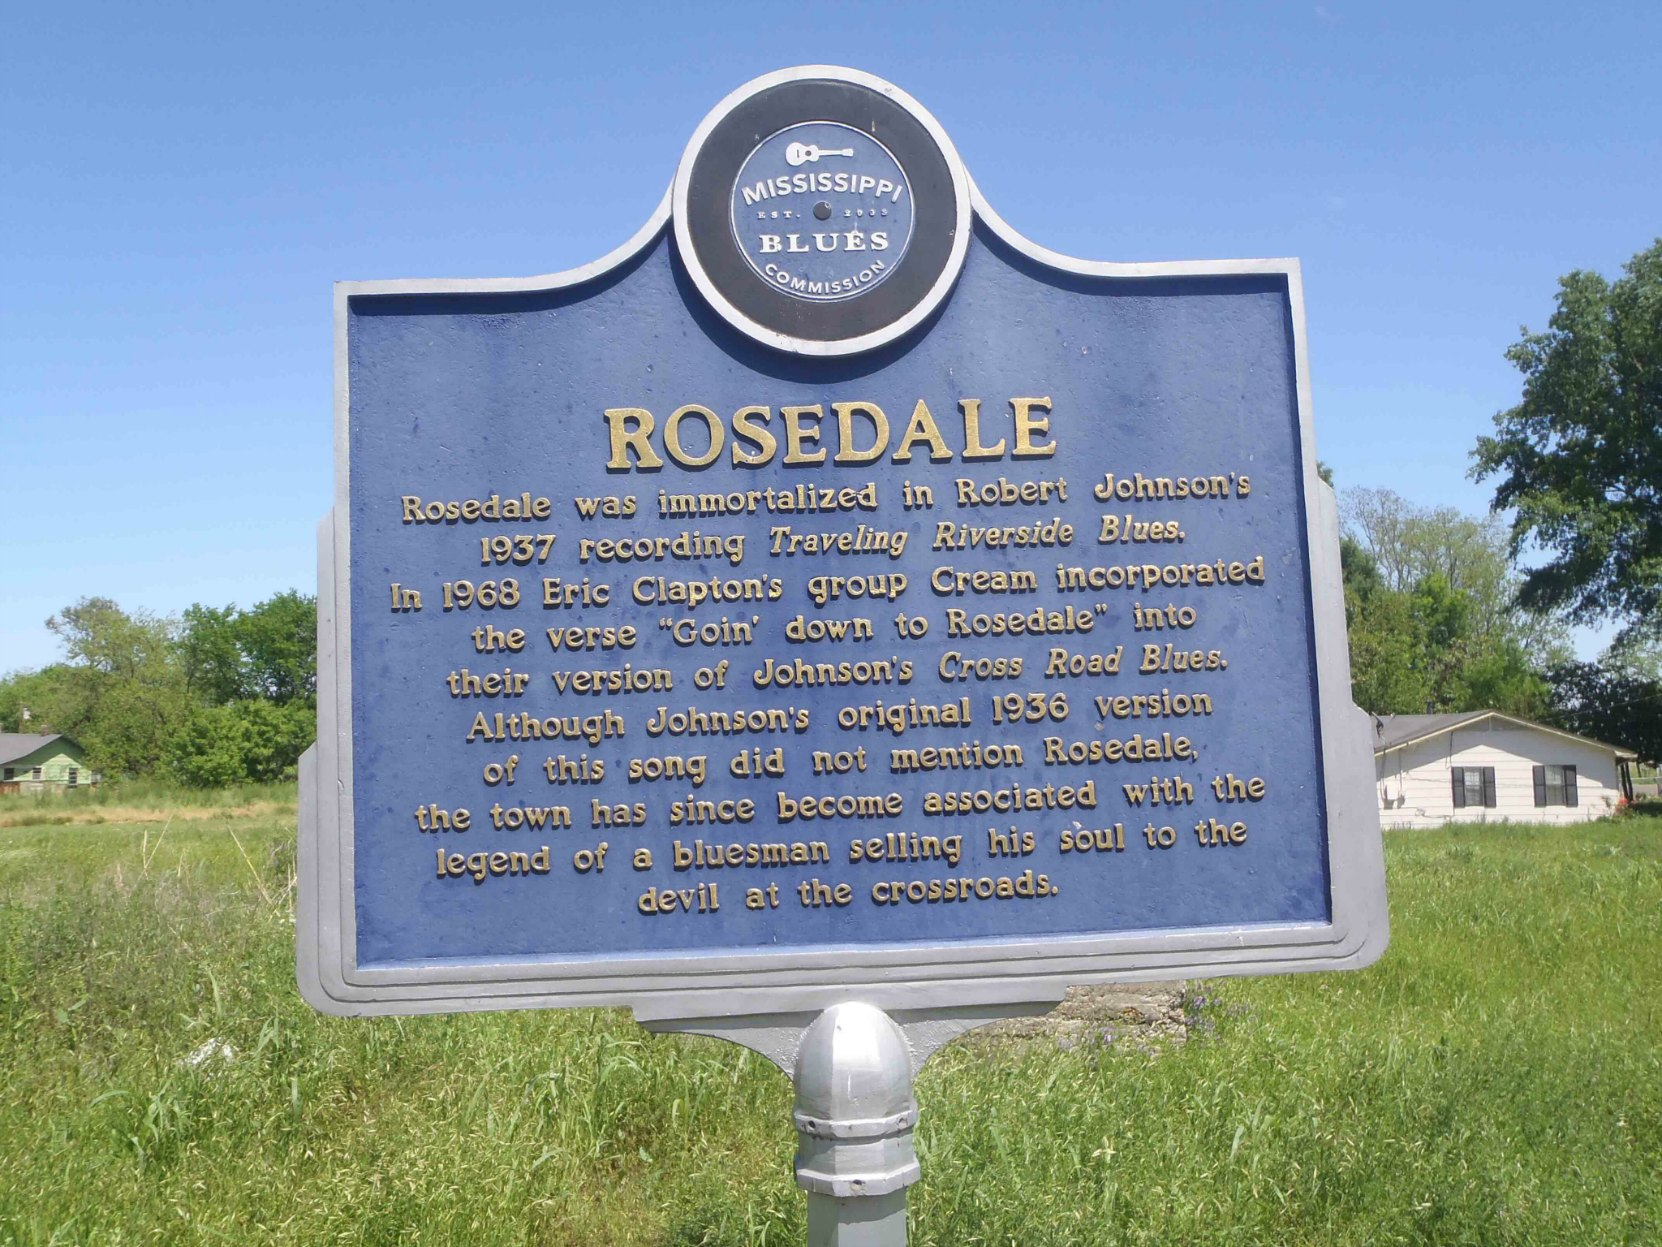 Mississippi Blues Trail marker commemorating Rosedale, at the site of Rosedale's former train station.